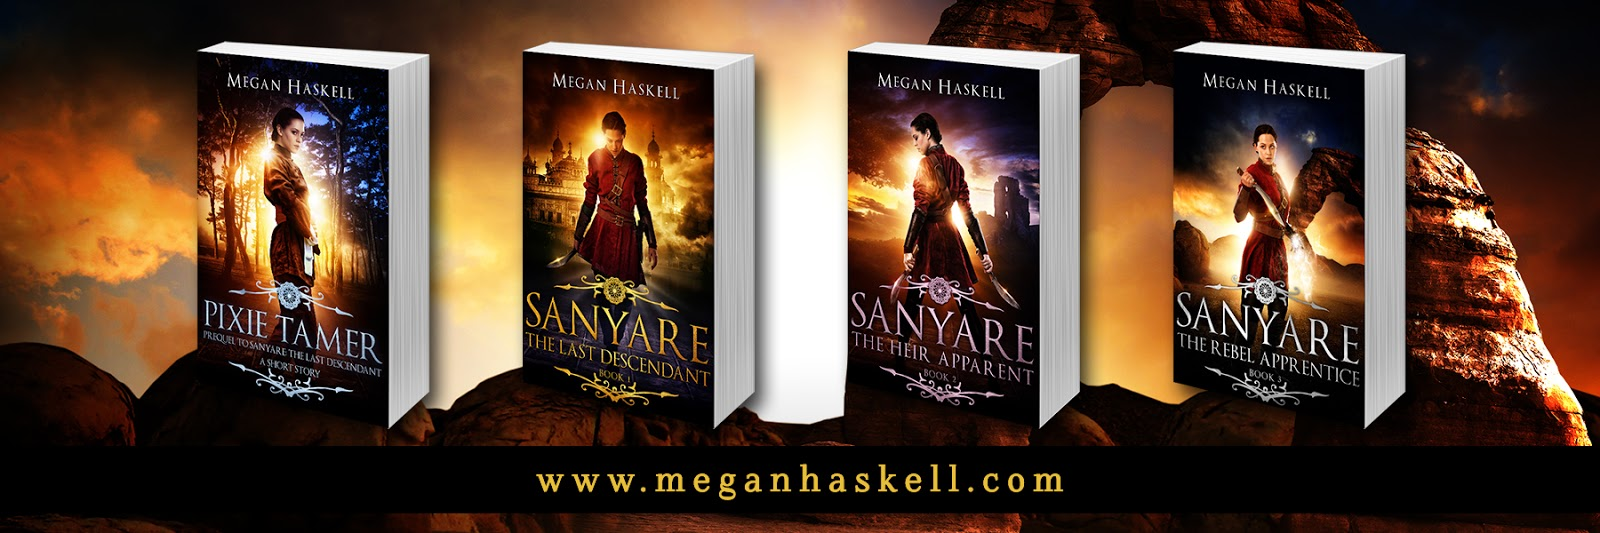 If you like headstrong heroines, mythological creatures, and a hearty dose  of magic and mayhem, then you'll love Megan Haskell's thrilling series.